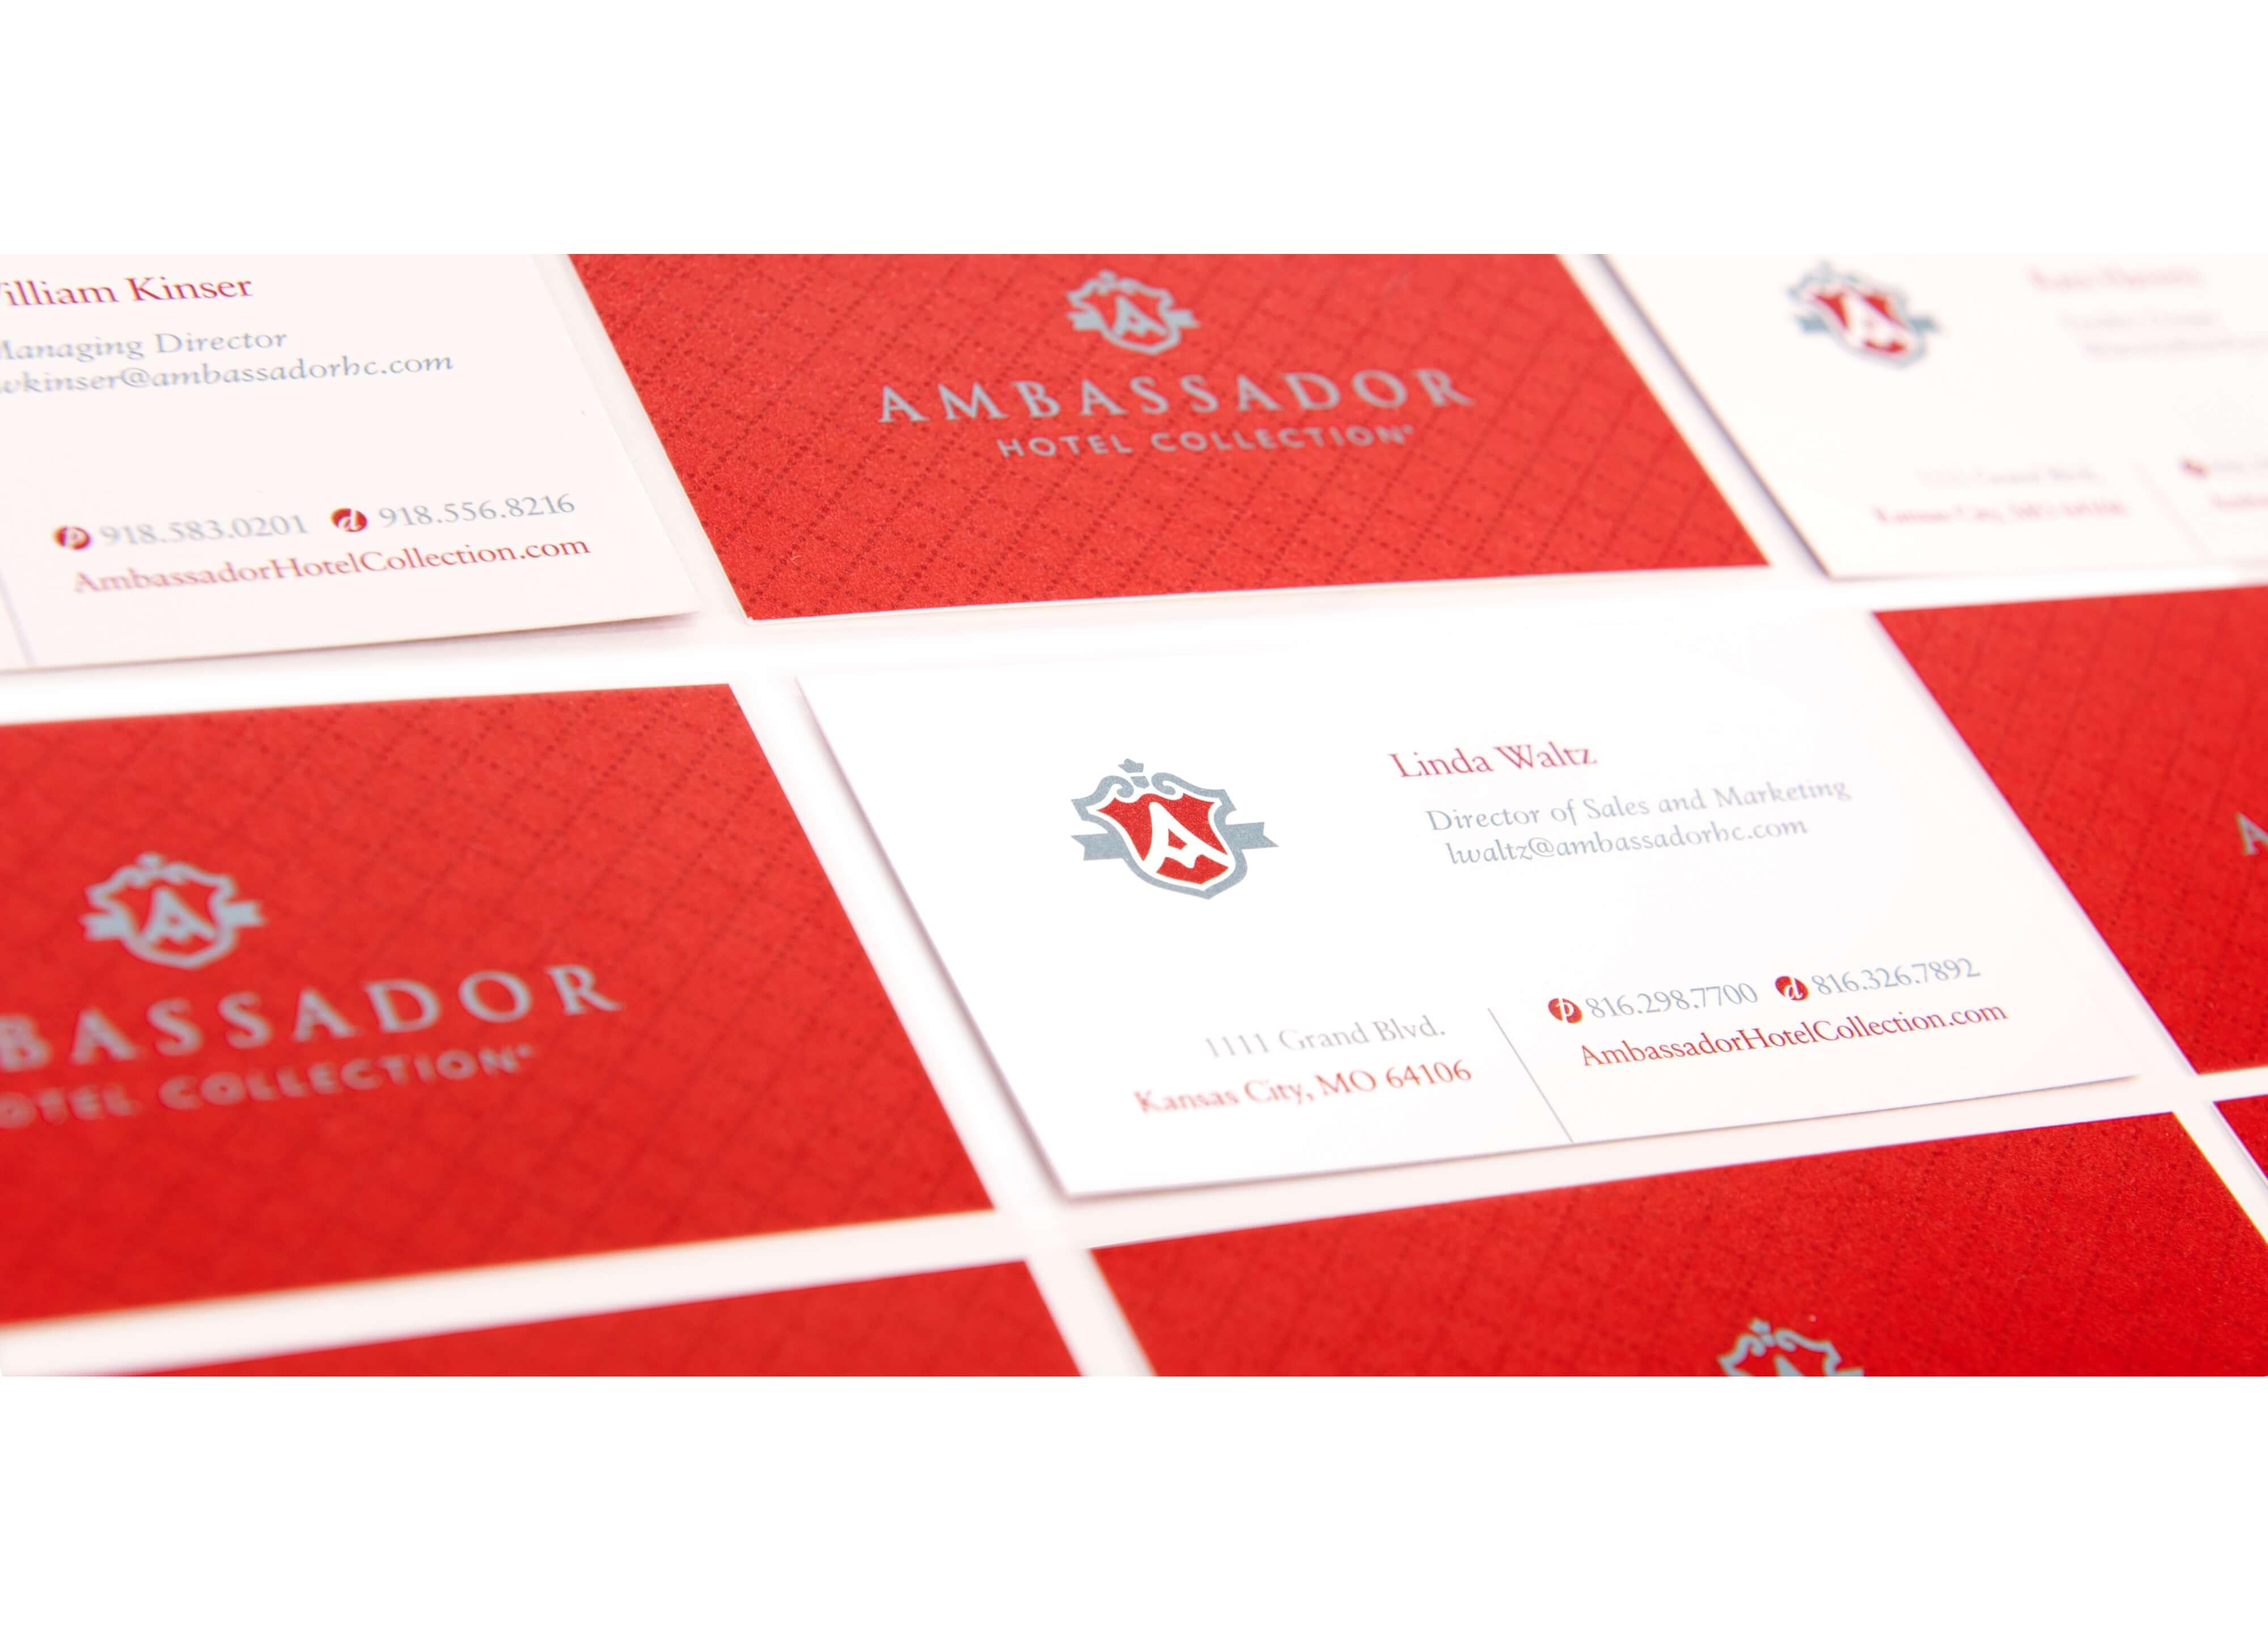 Ambassador business card examples